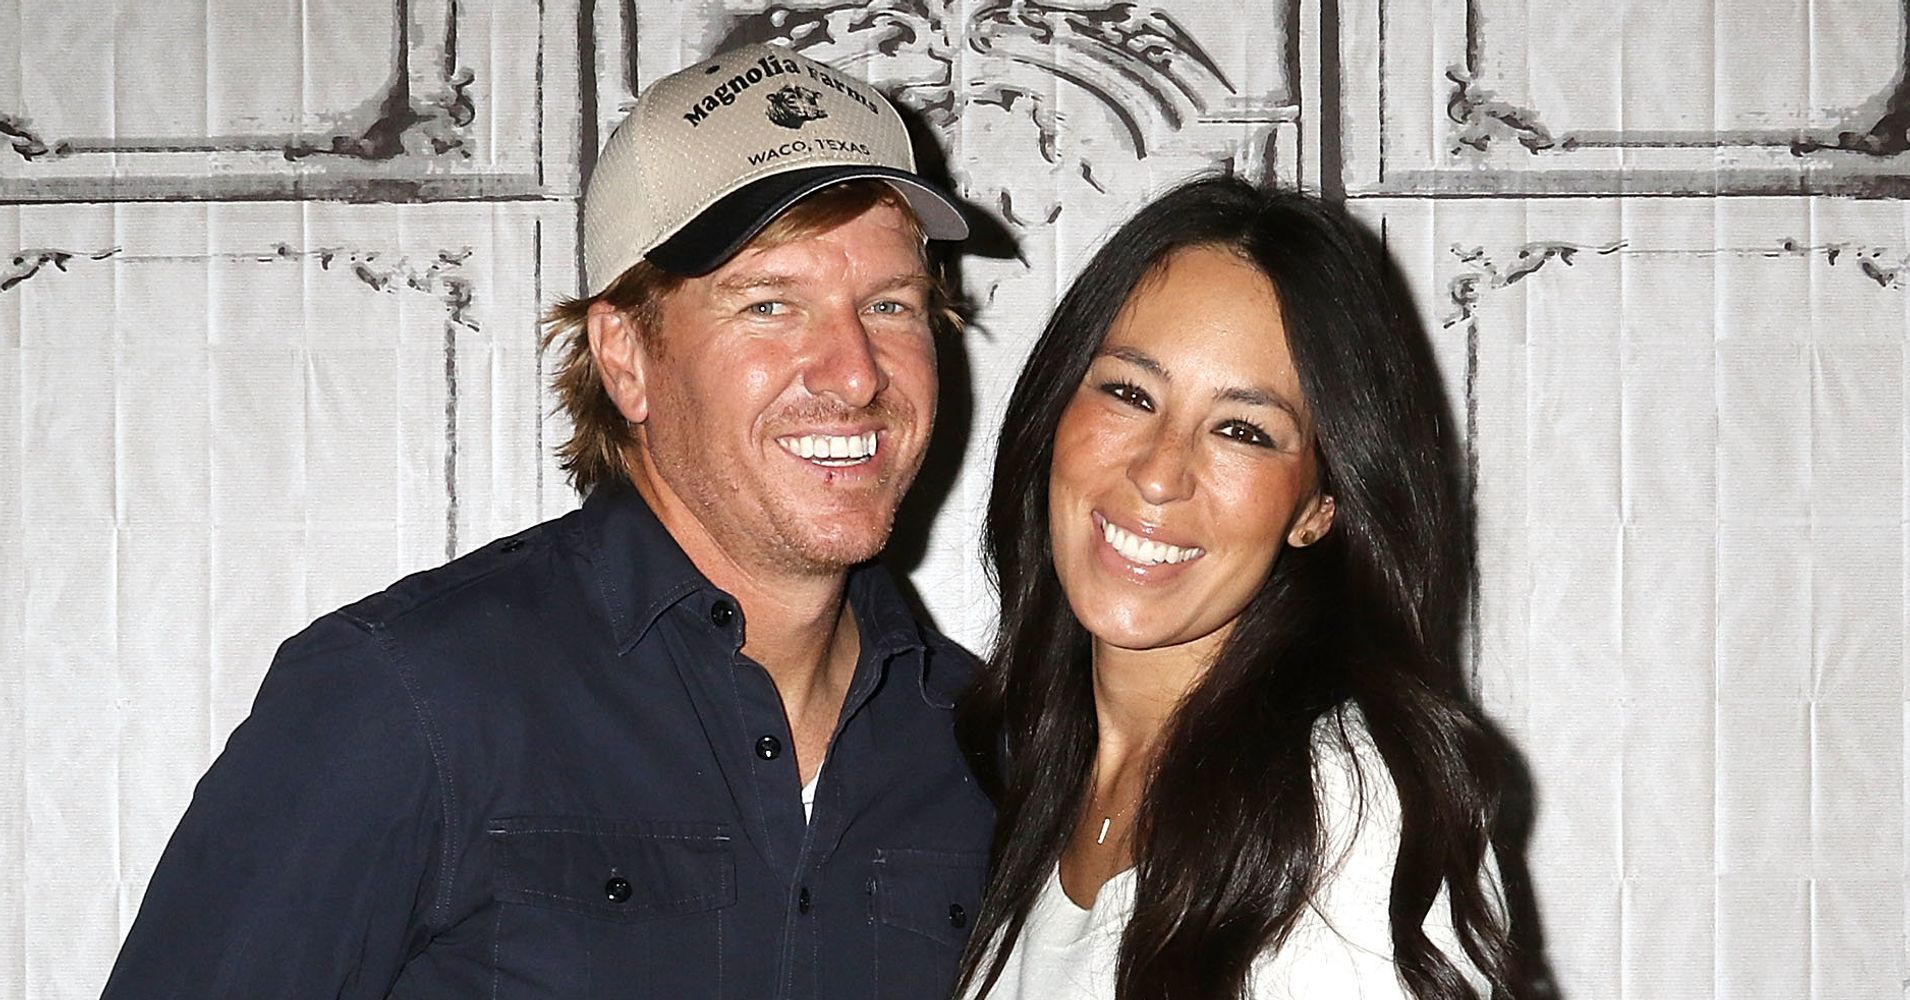 39 fixer upper 39 casting call seemingly confirms parts of the show are staged huffpost. Black Bedroom Furniture Sets. Home Design Ideas